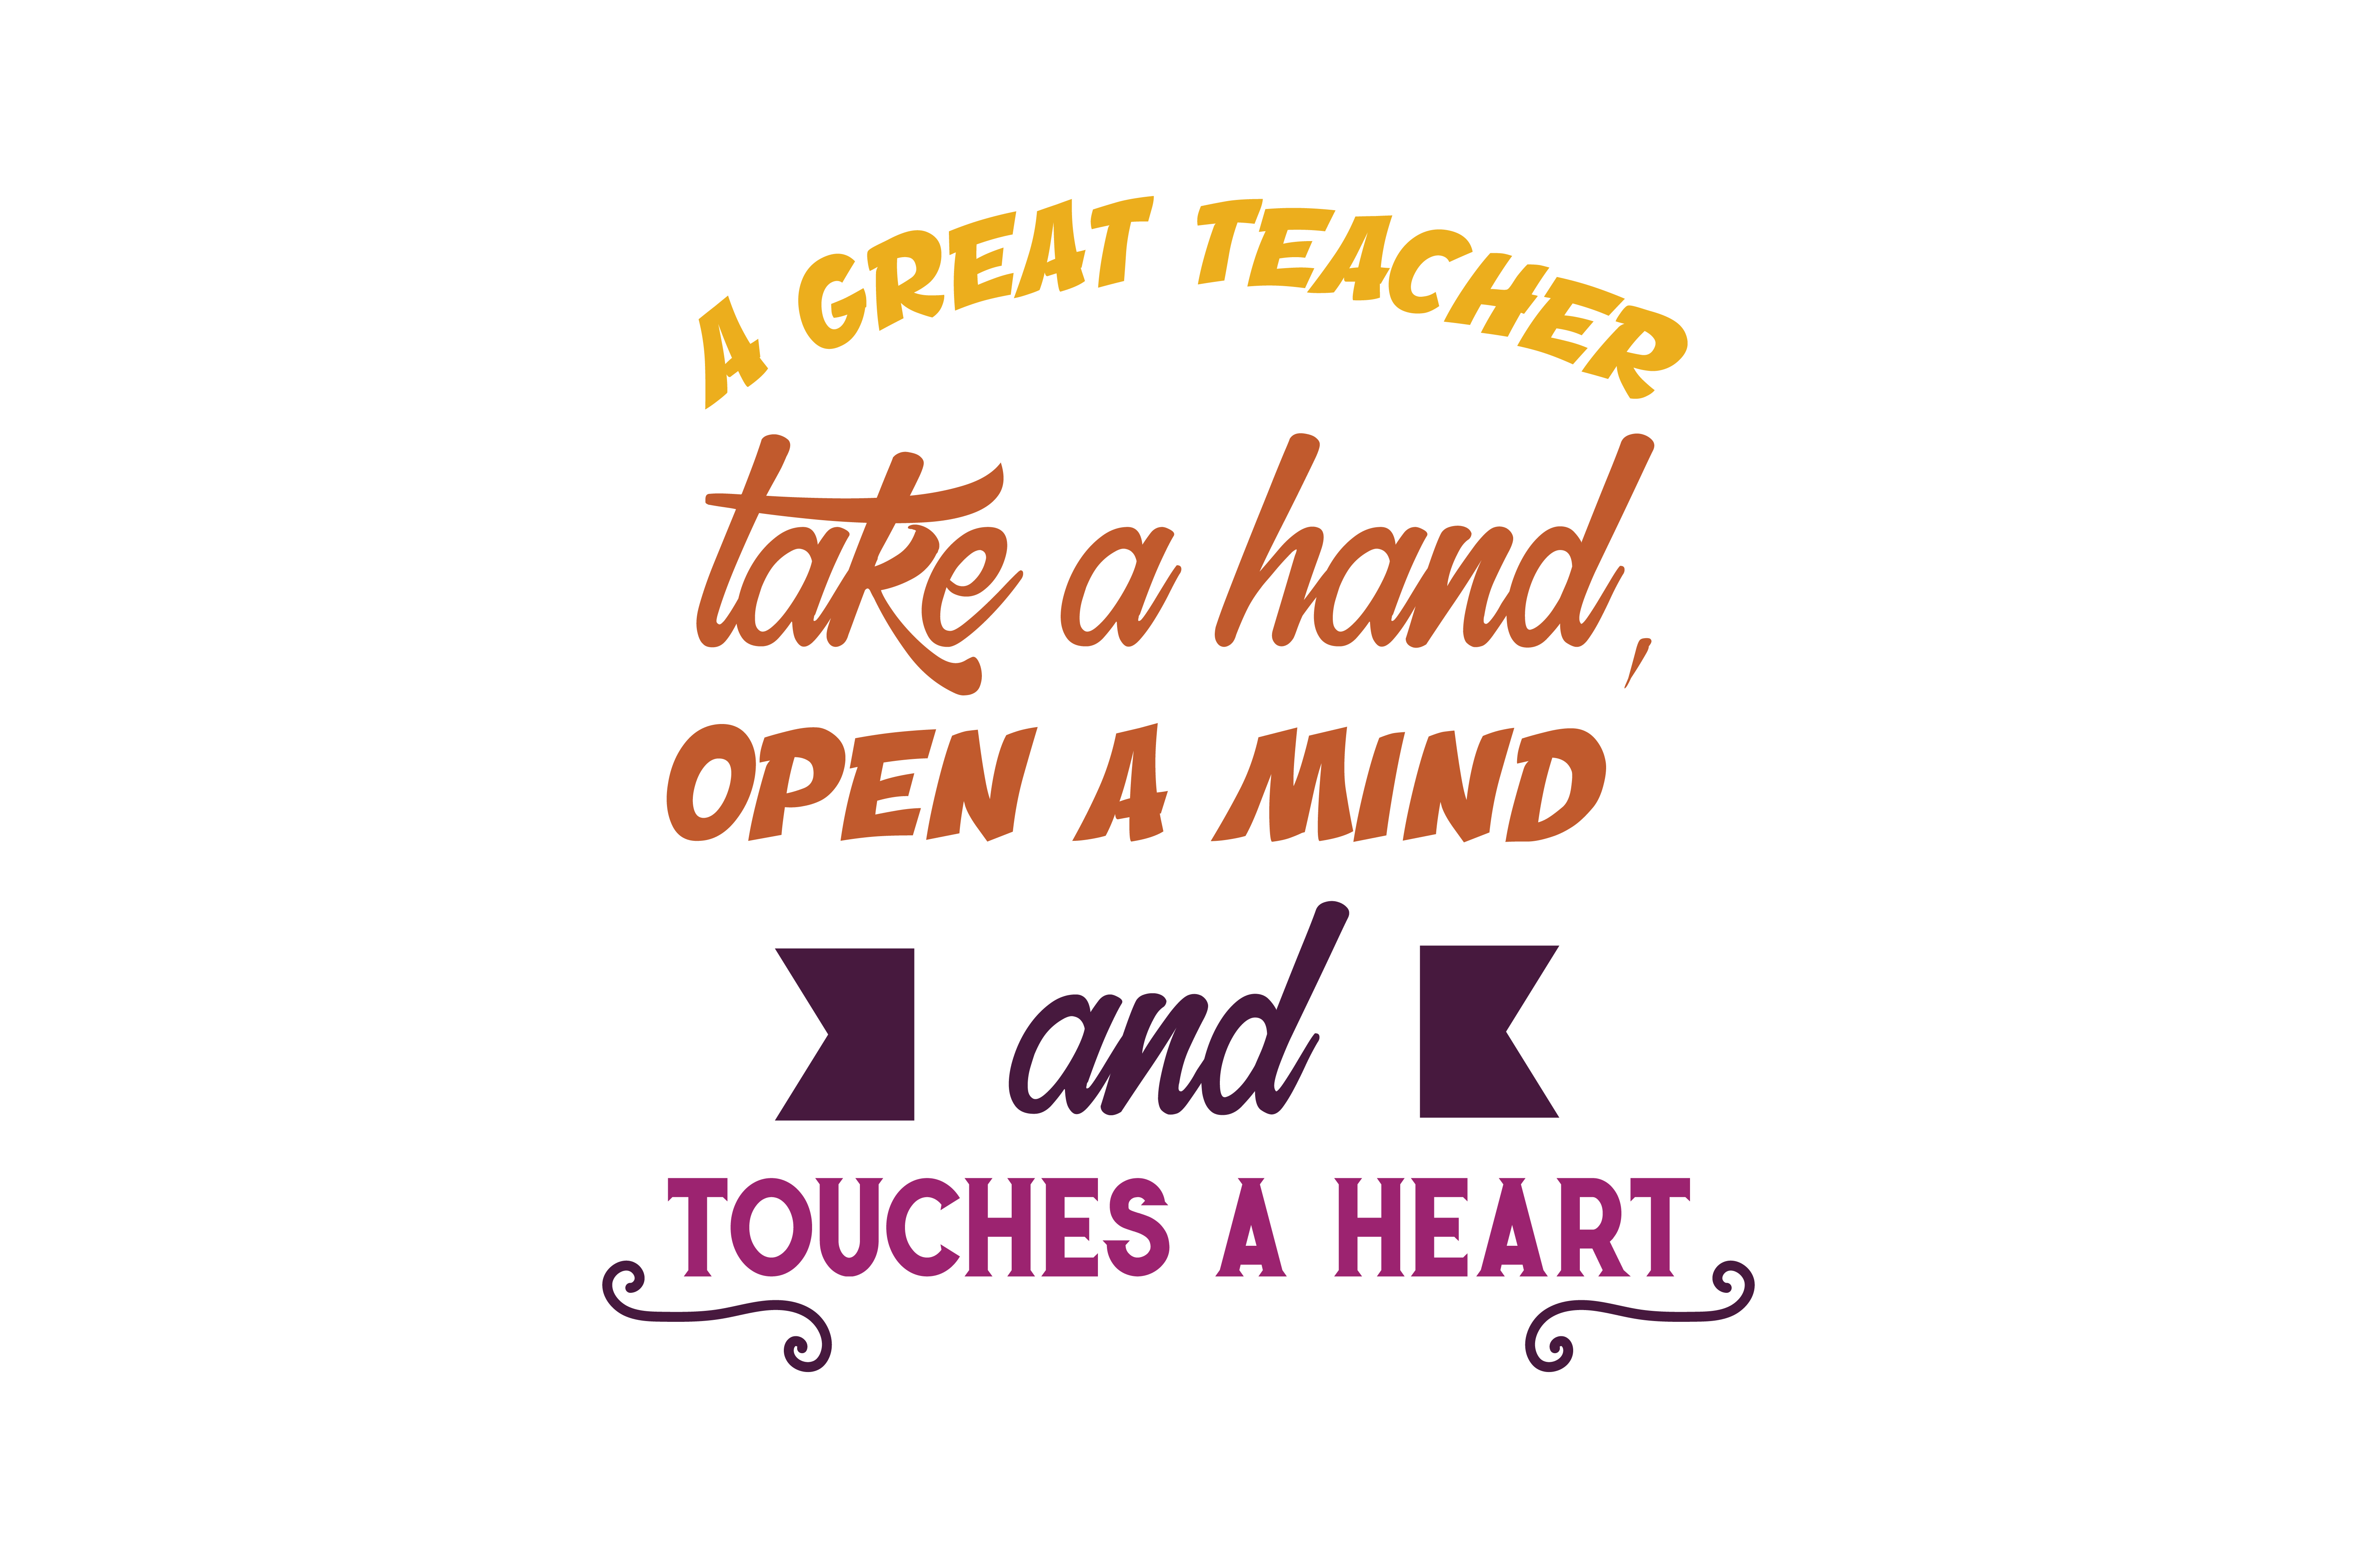 Download Free A Great Teacher Take A Hand Open A Mind And Touches A Heart Quote for Cricut Explore, Silhouette and other cutting machines.